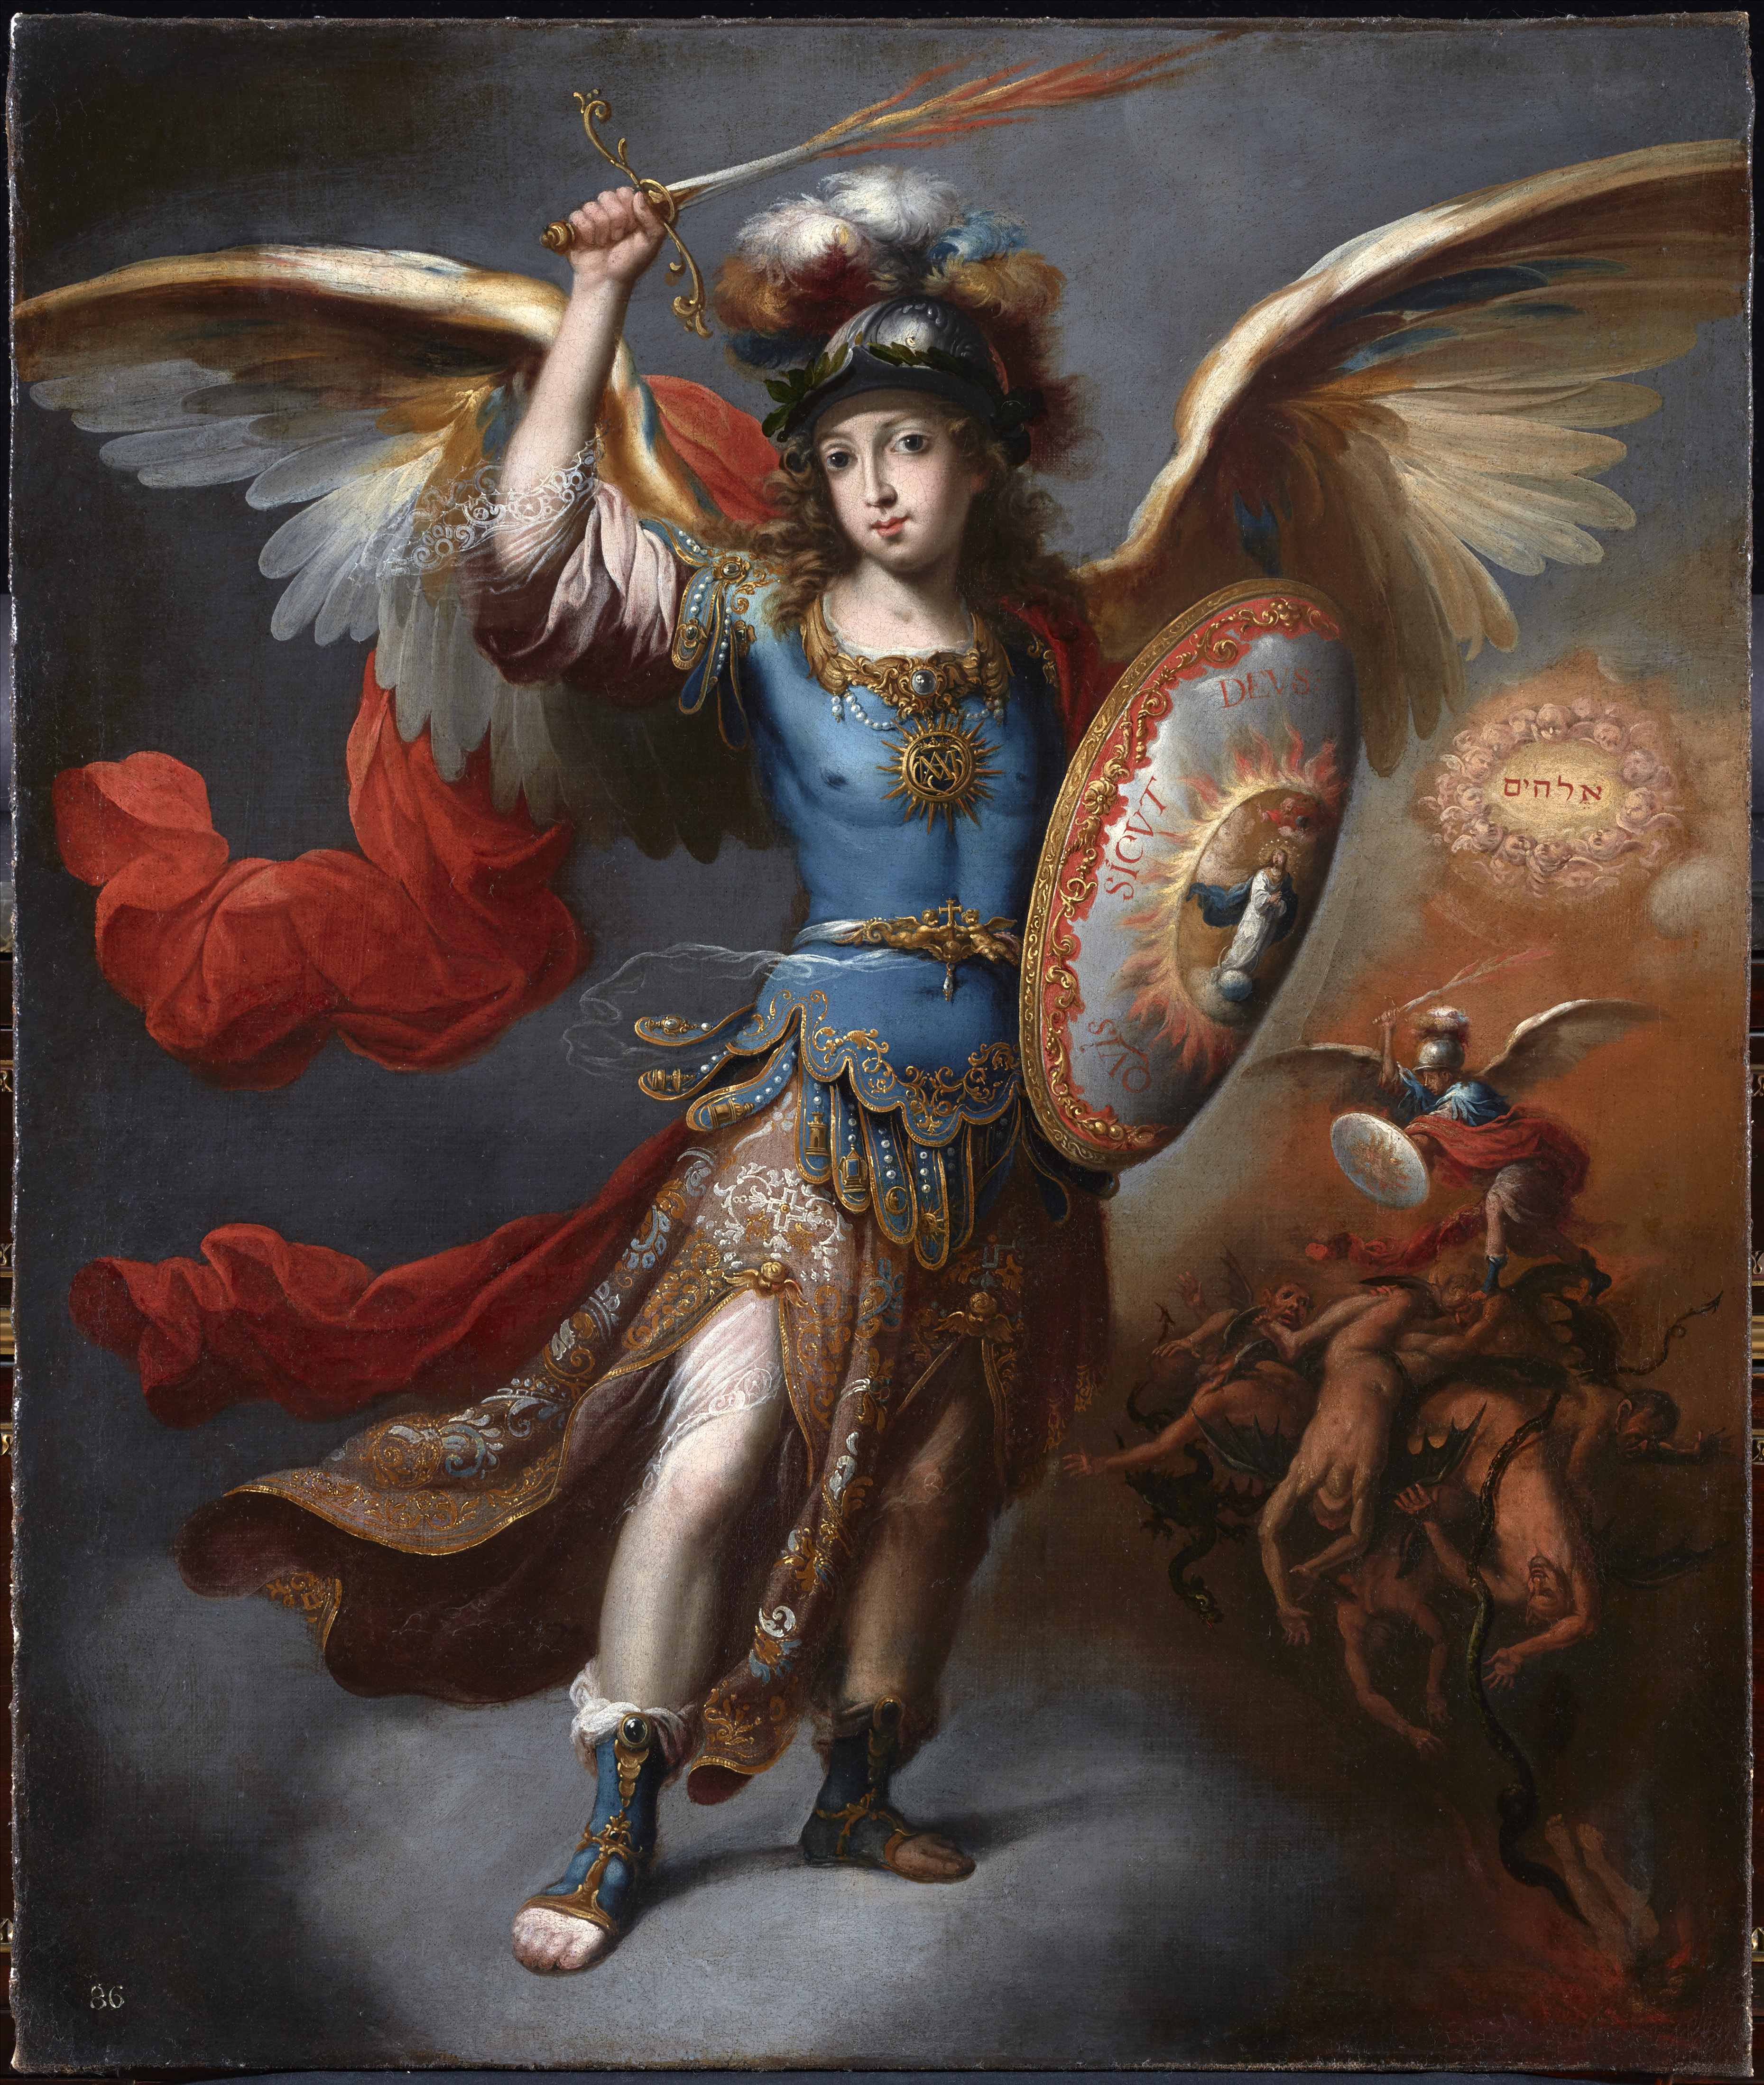 The Archangel Michael and The Archangel Raphael